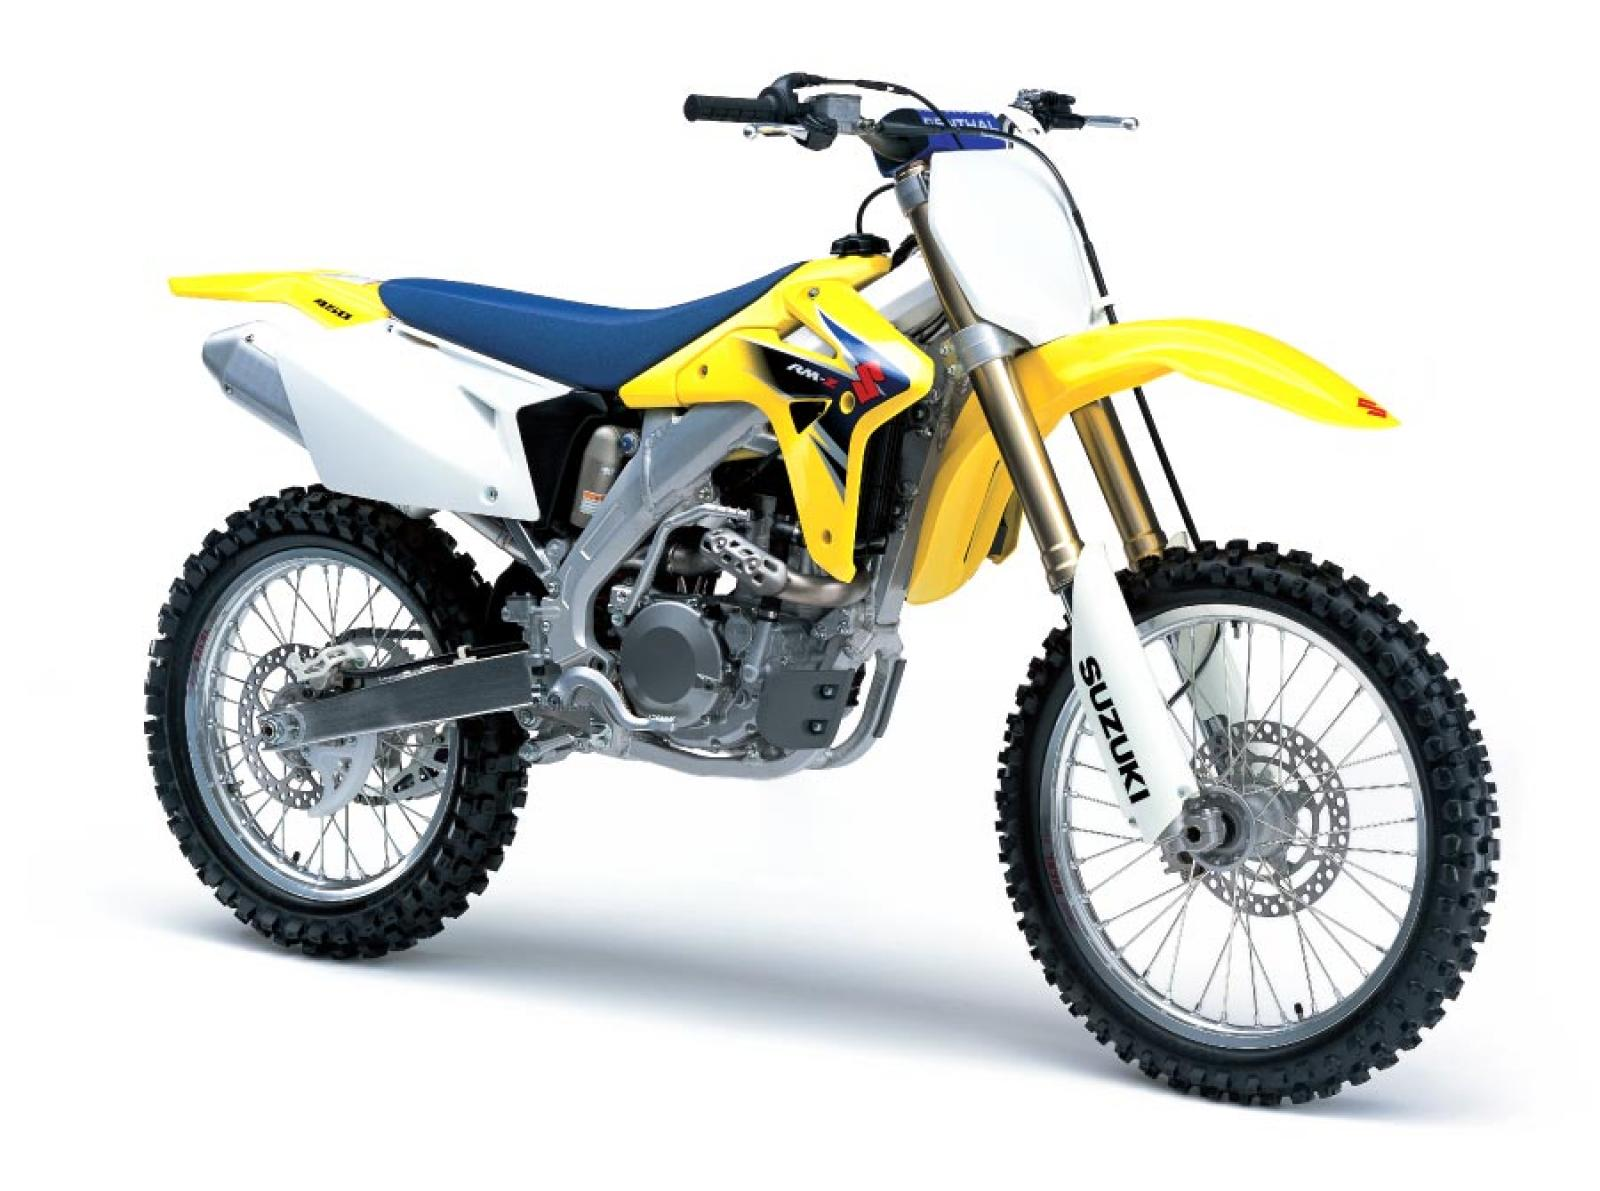 2007 suzuki rmz 450 moto zombdrive com. Black Bedroom Furniture Sets. Home Design Ideas